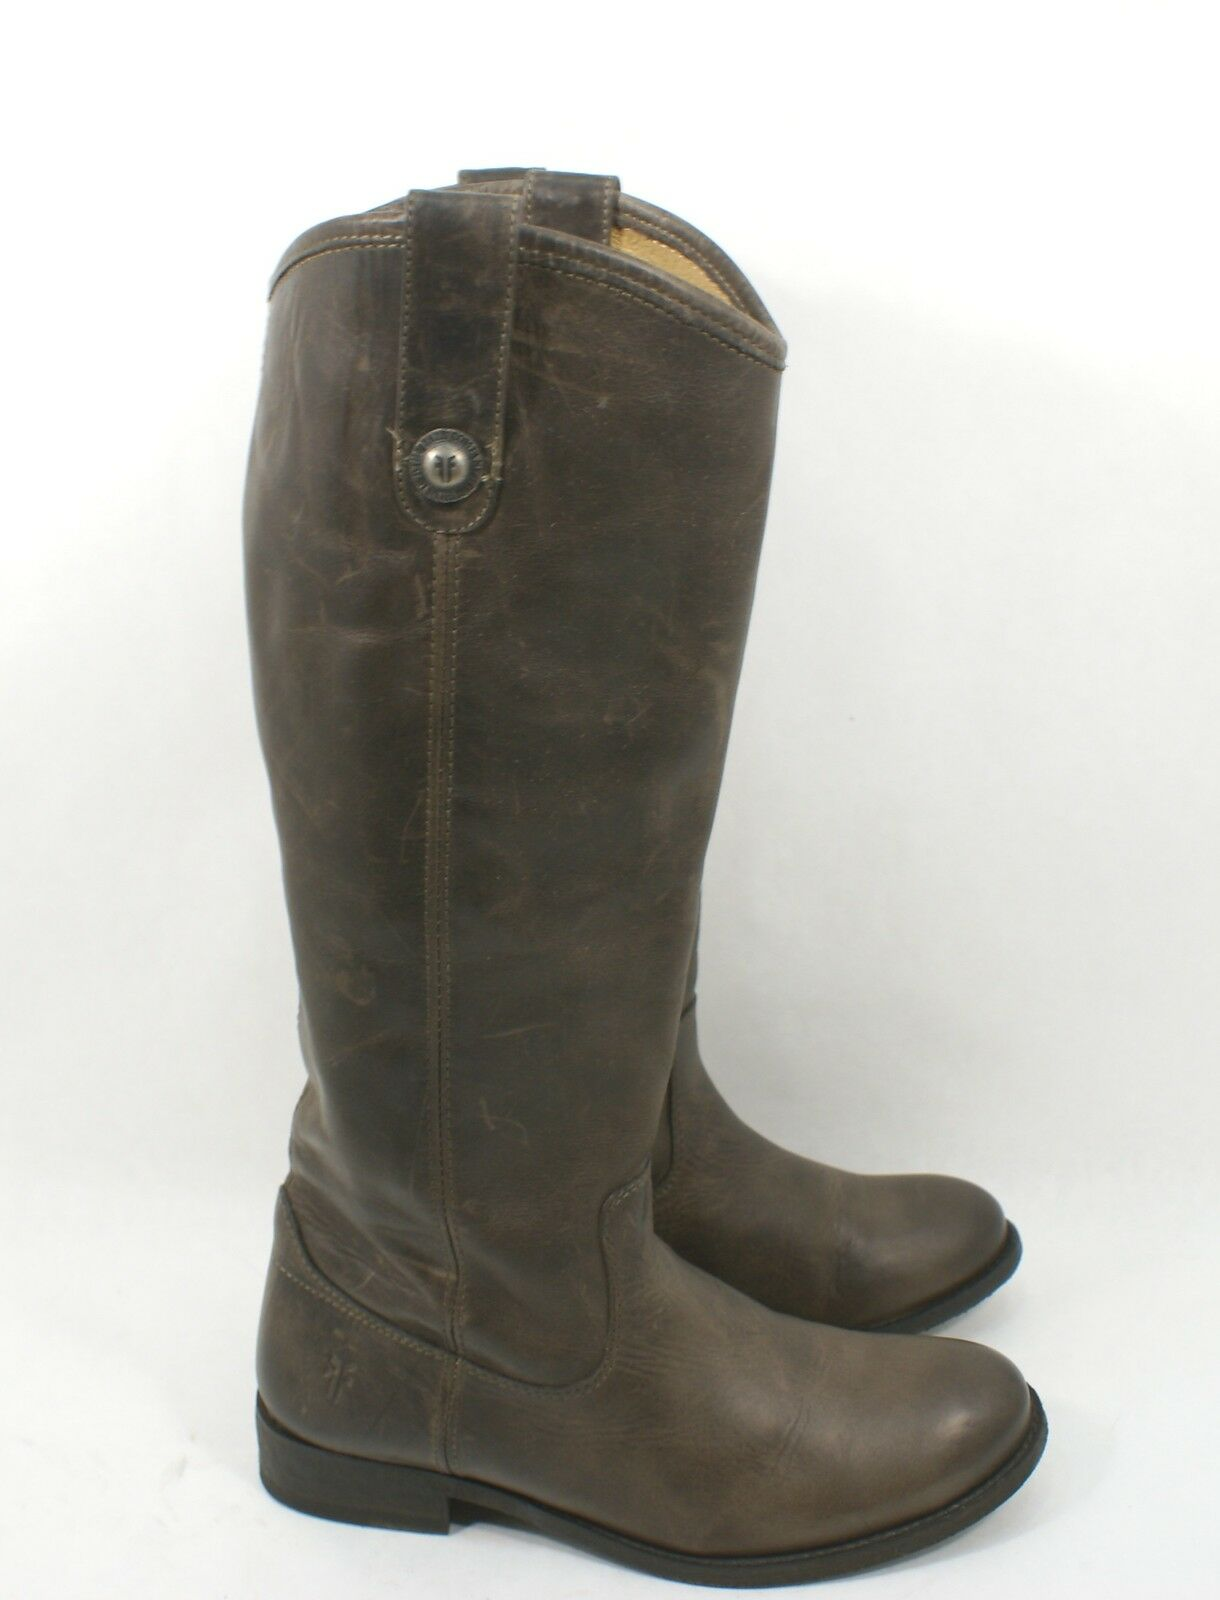 Frye Size 6.5 B  'Melissa Button' Riding Boot Slate Brown Knee High Leather  370